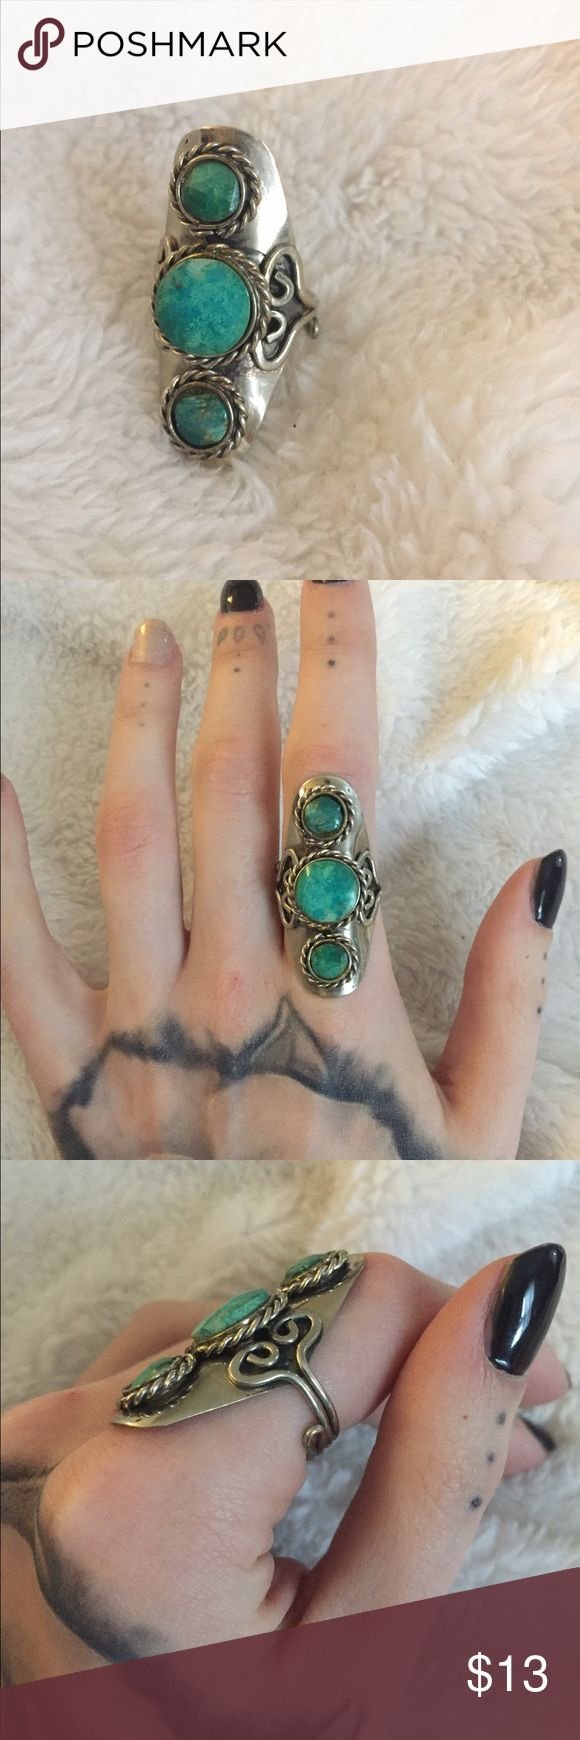 Sterling Silver Turquoise ring Boho style turquoise ring. Very comfortable and chic. Purchased from Earthbound Trading Company Jewelry Rings